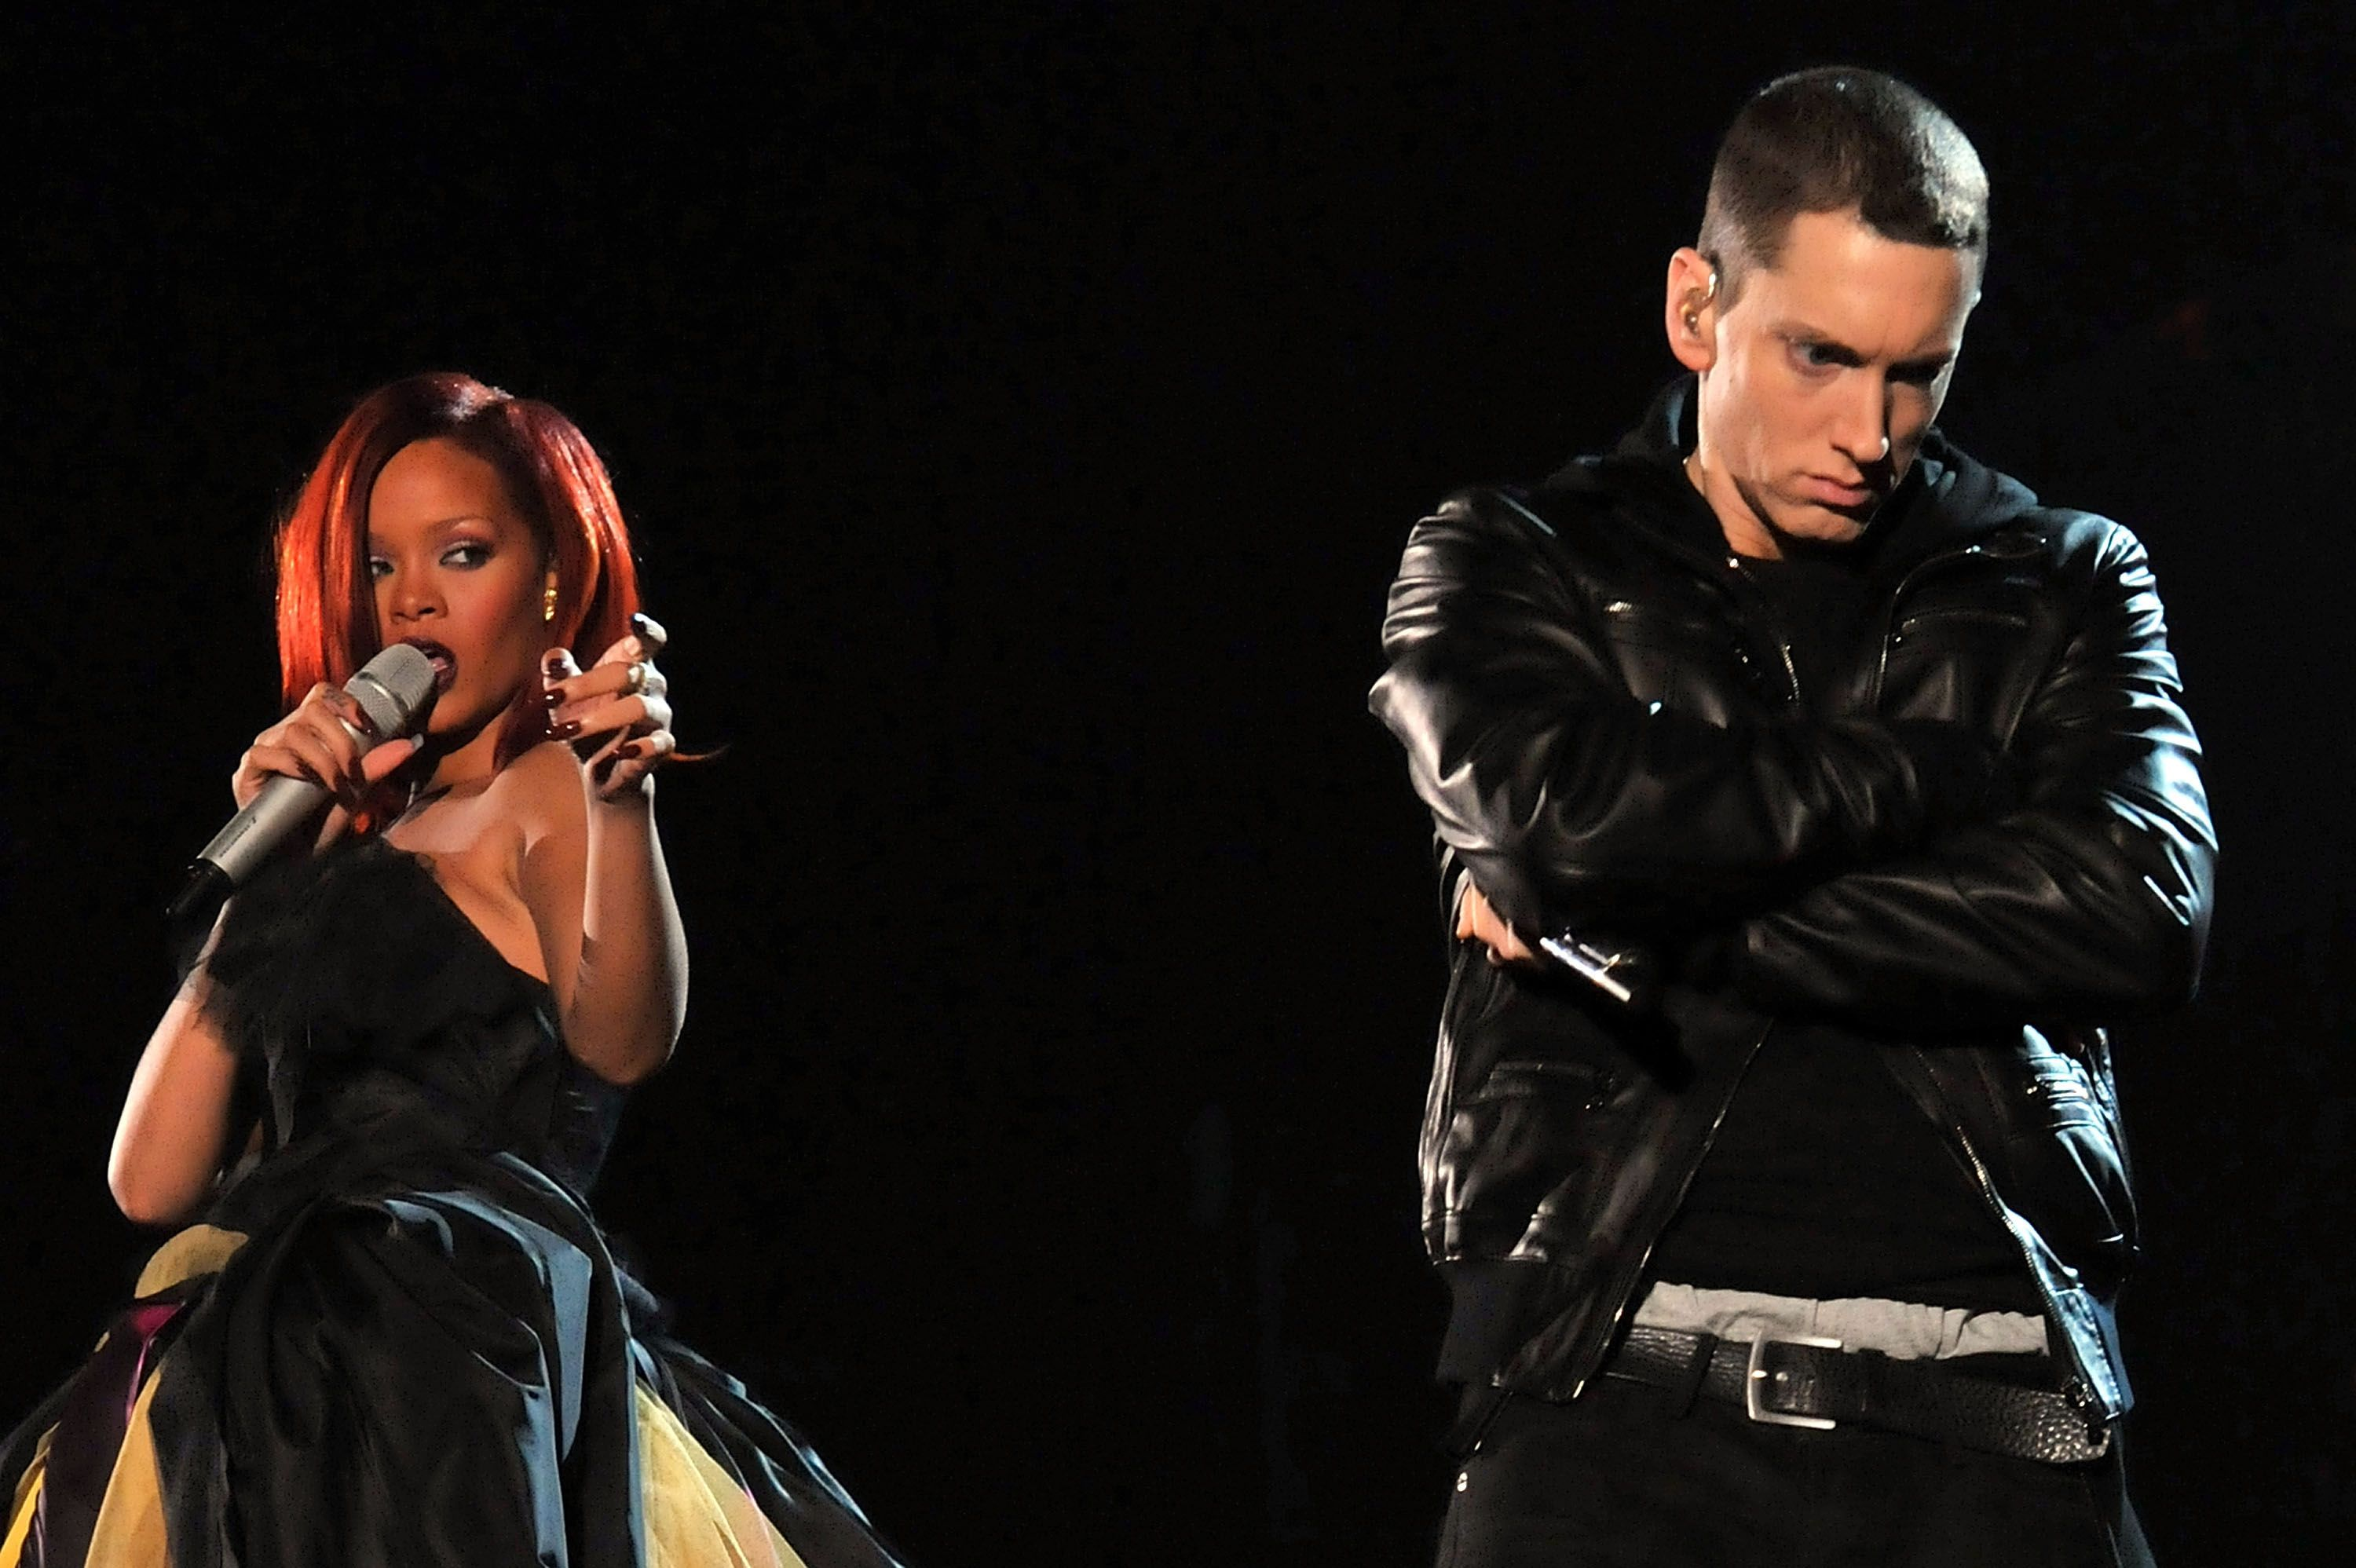 Eminem Reportedly Says He Sides With Chris Brown Over Rihanna Assault On Alleged Leaked Song